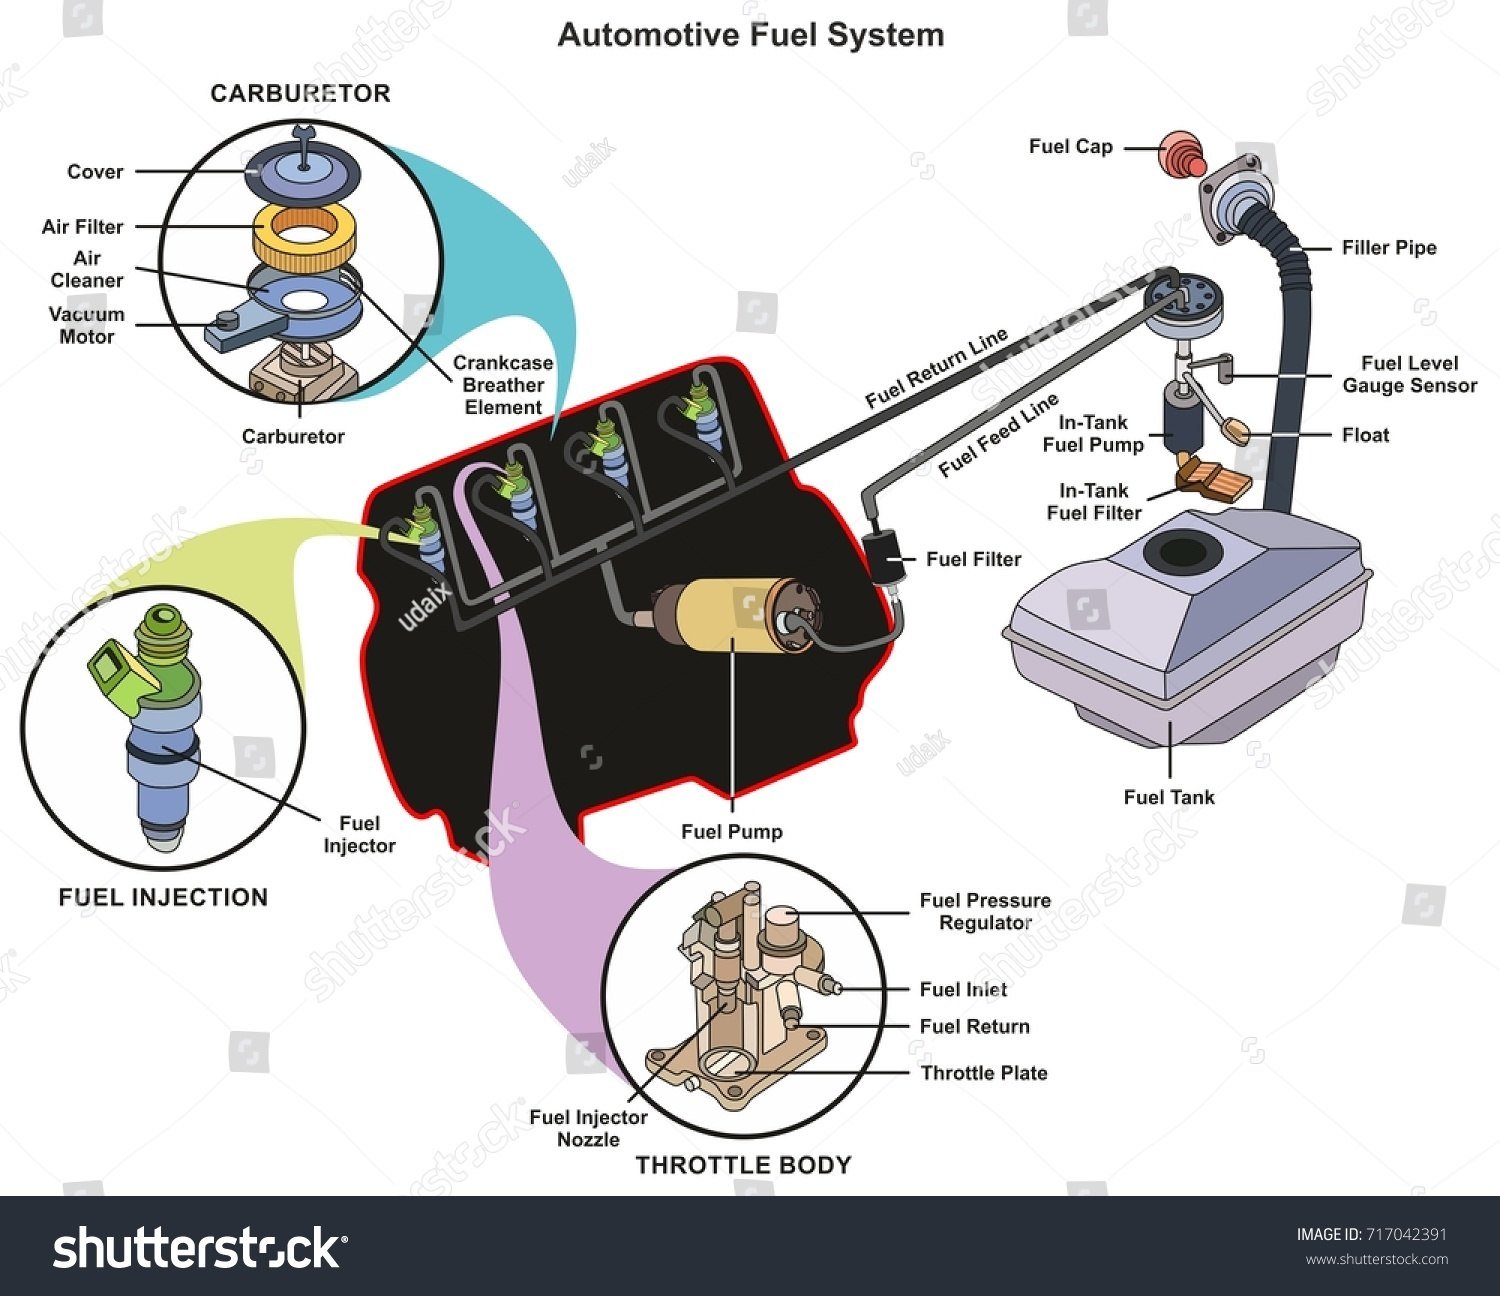 Automotive Fuel System infographic diagram showing parts of carburetor  injector throttle body from tank to engine